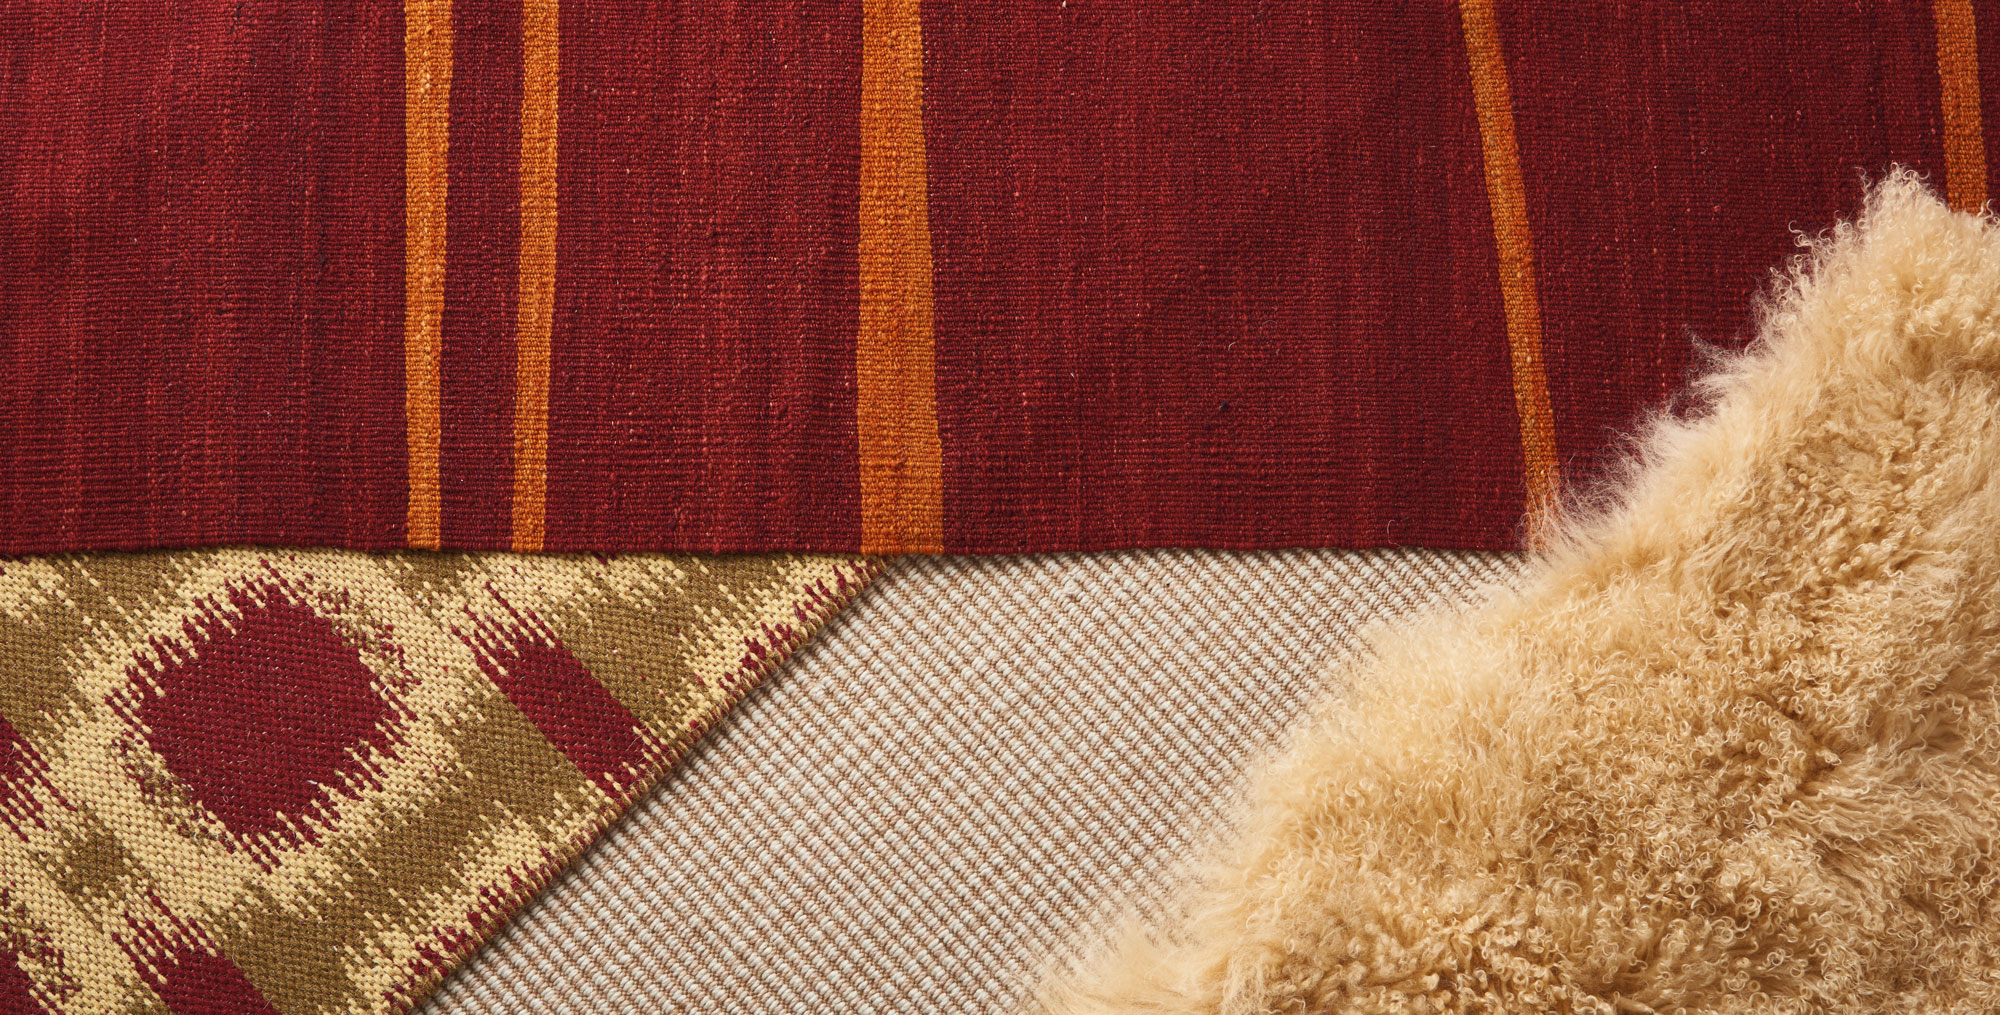 Layering rugs takes your room to the next level